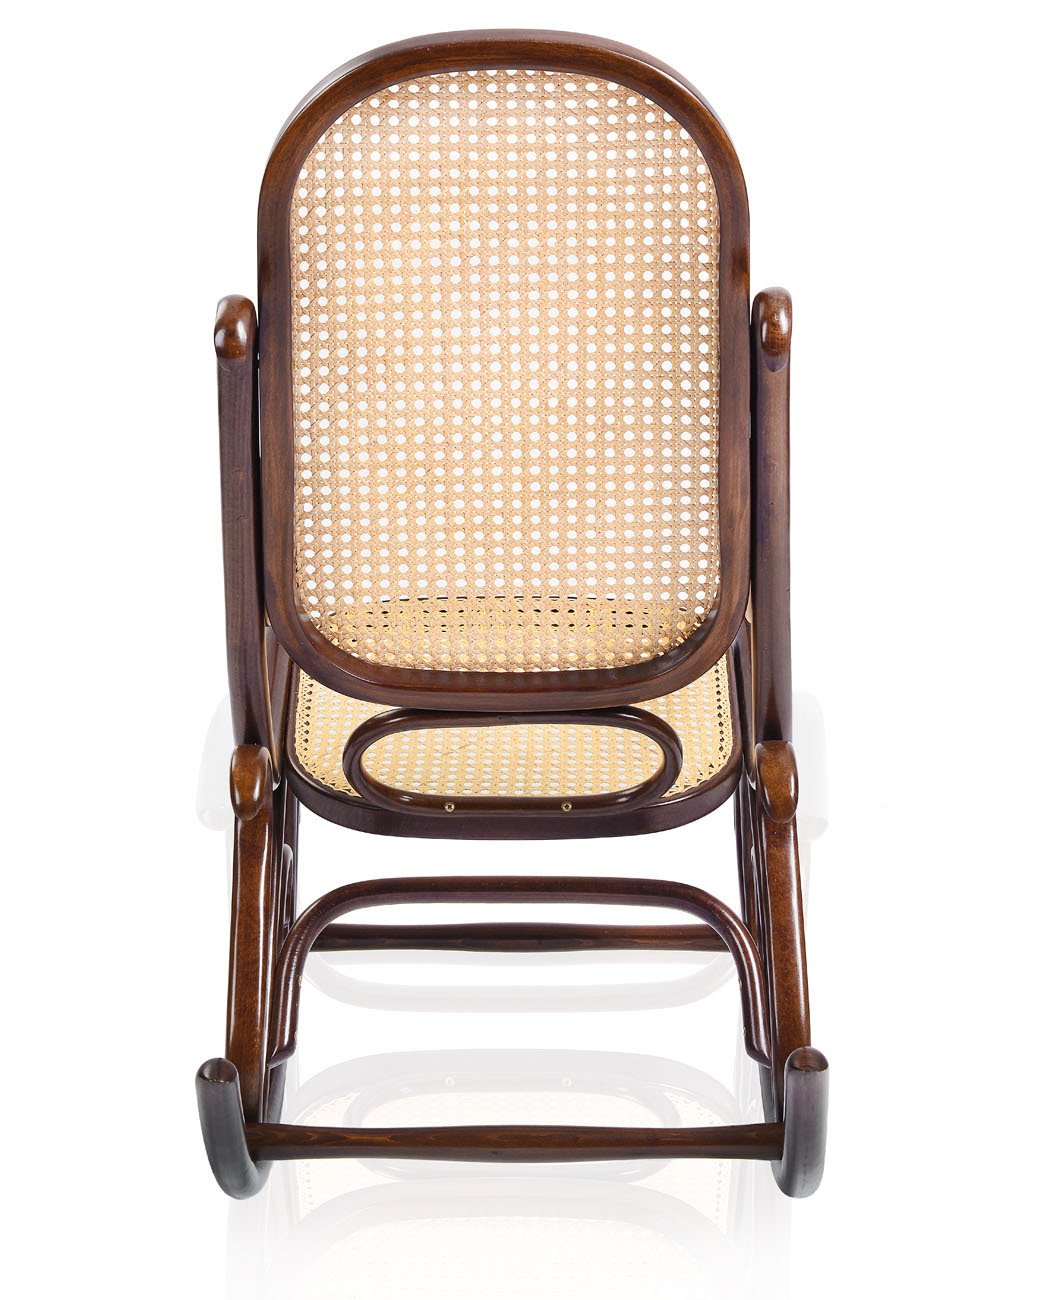 Schaukelstuhl gebr der thonet vienna for Rocking chair schaukelstuhl